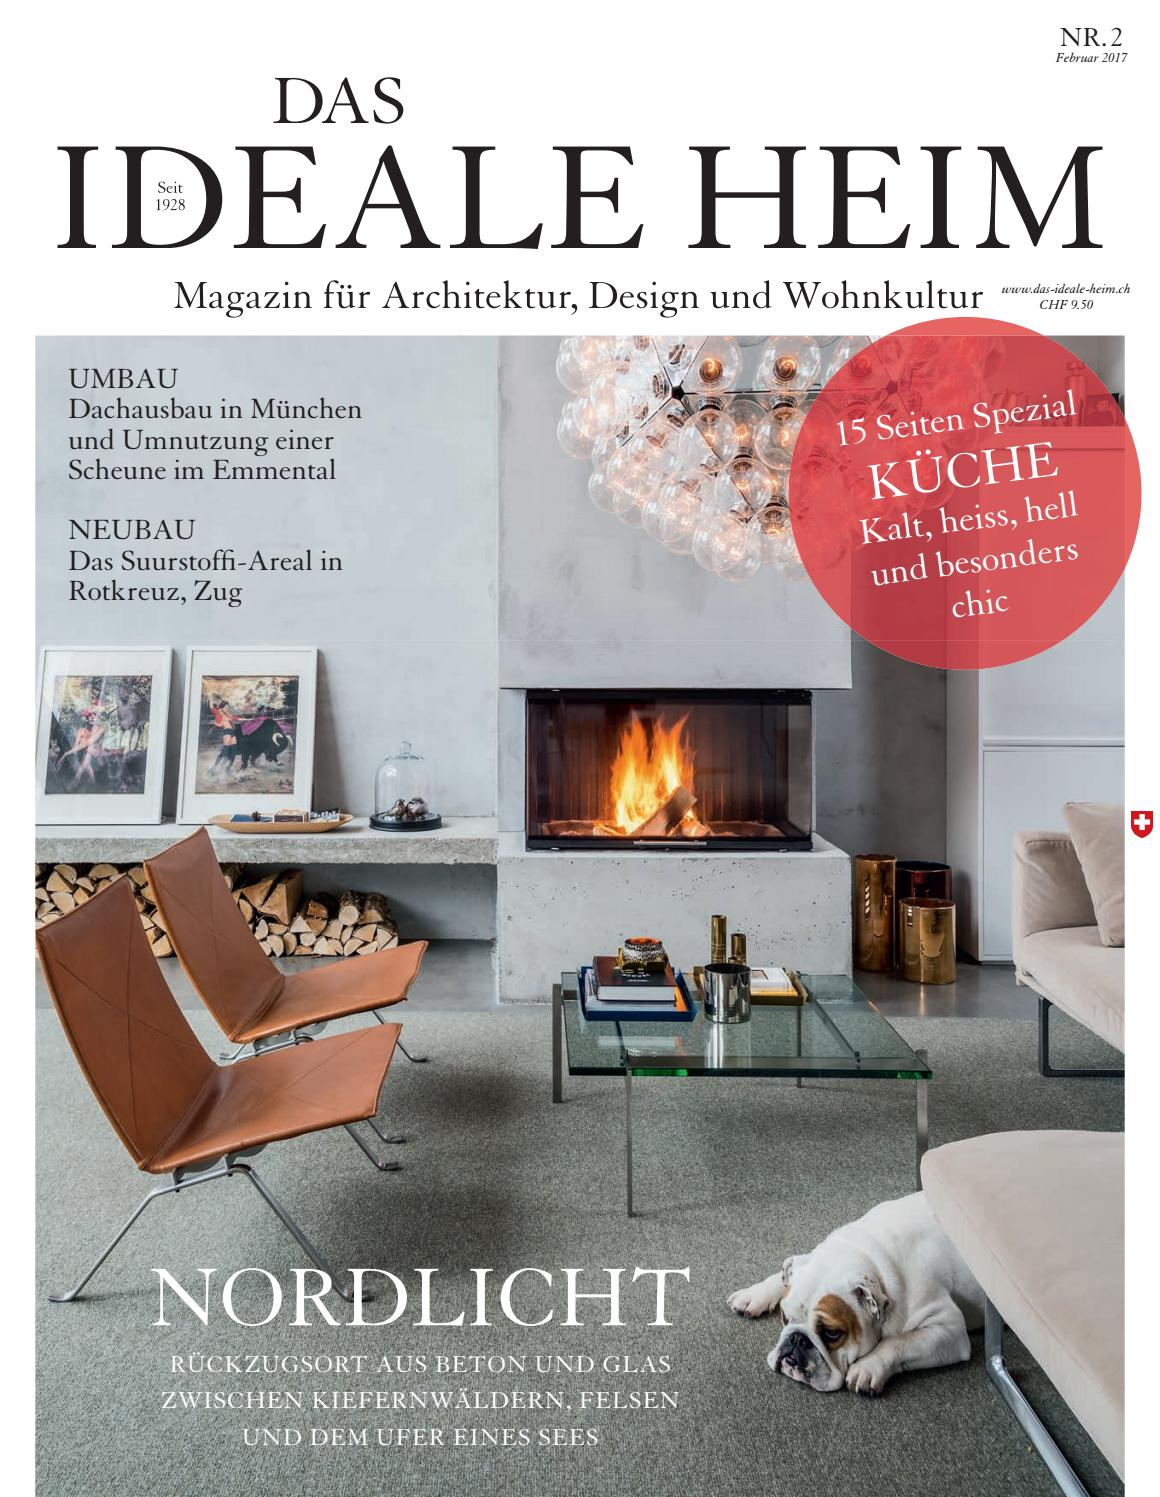 Das Ideale Heim 02/2017 by Archithema Verlag - issuu